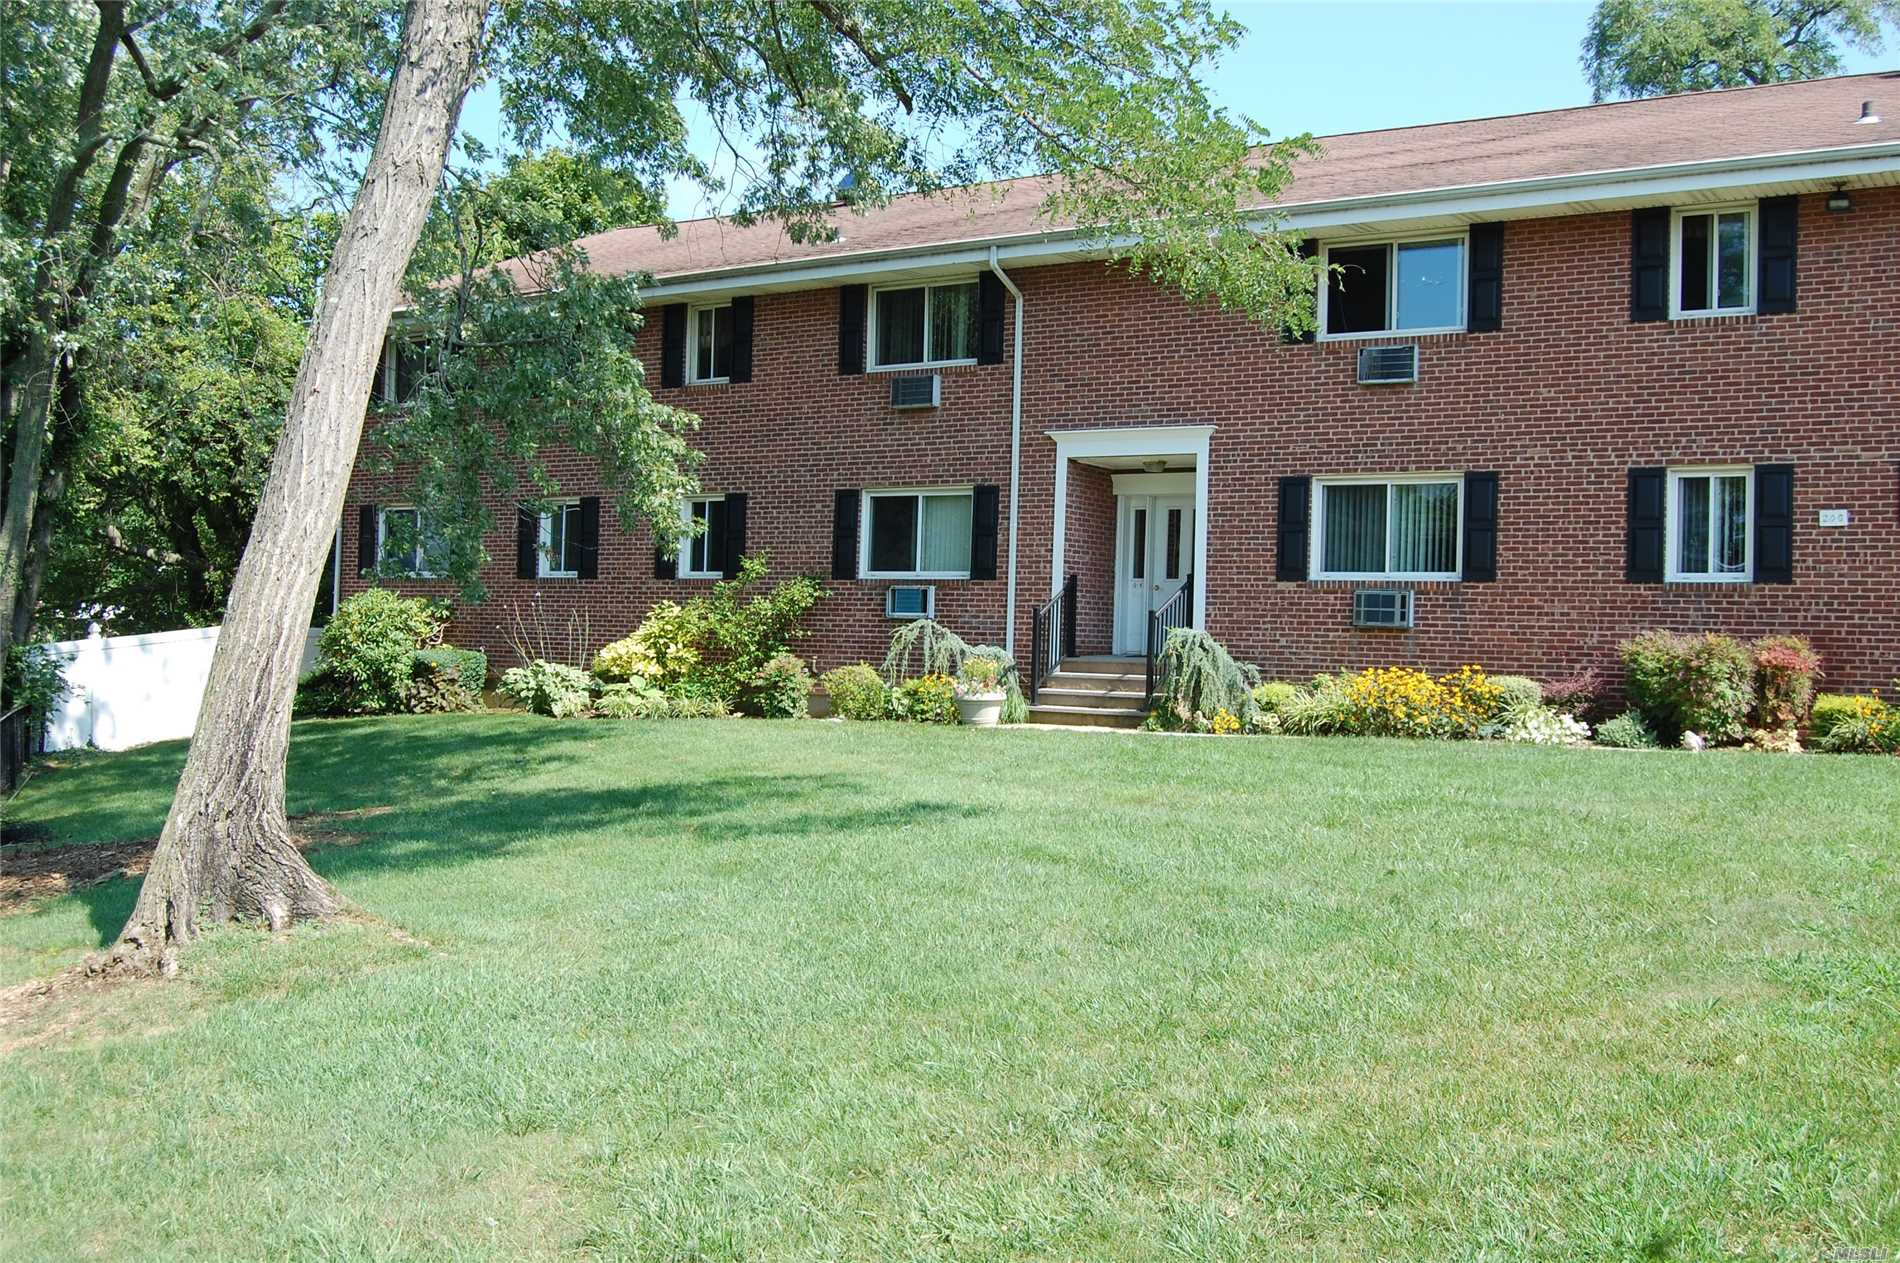 Property for sale at 200 Merrick Rd, Amityville,  NY 11701